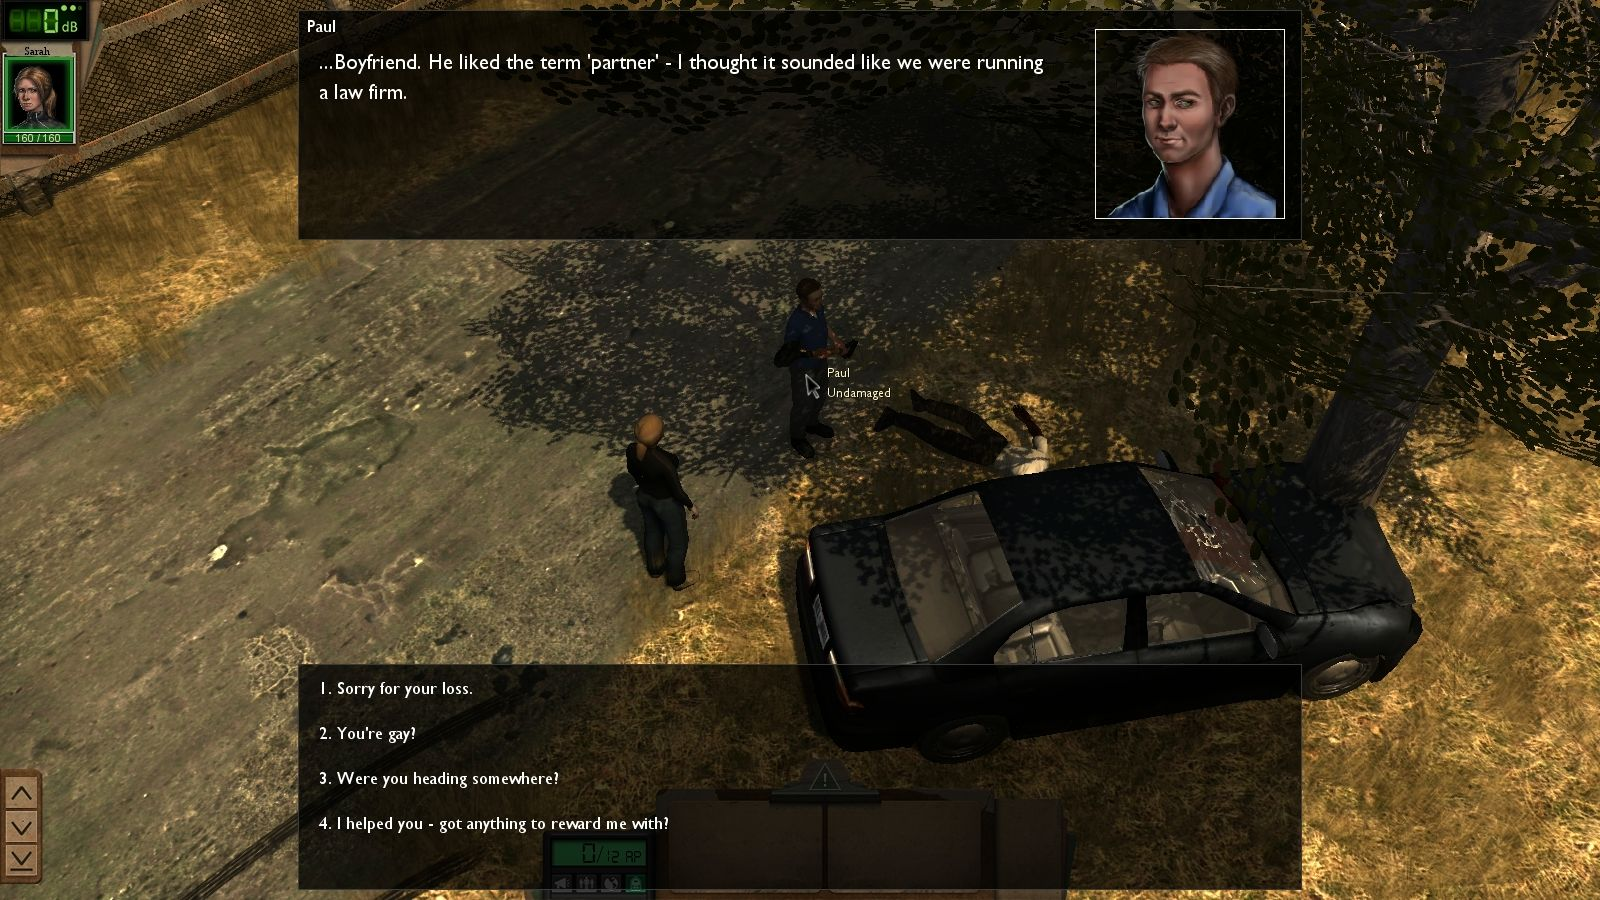 Dead State: The Zombie Survival RPG on